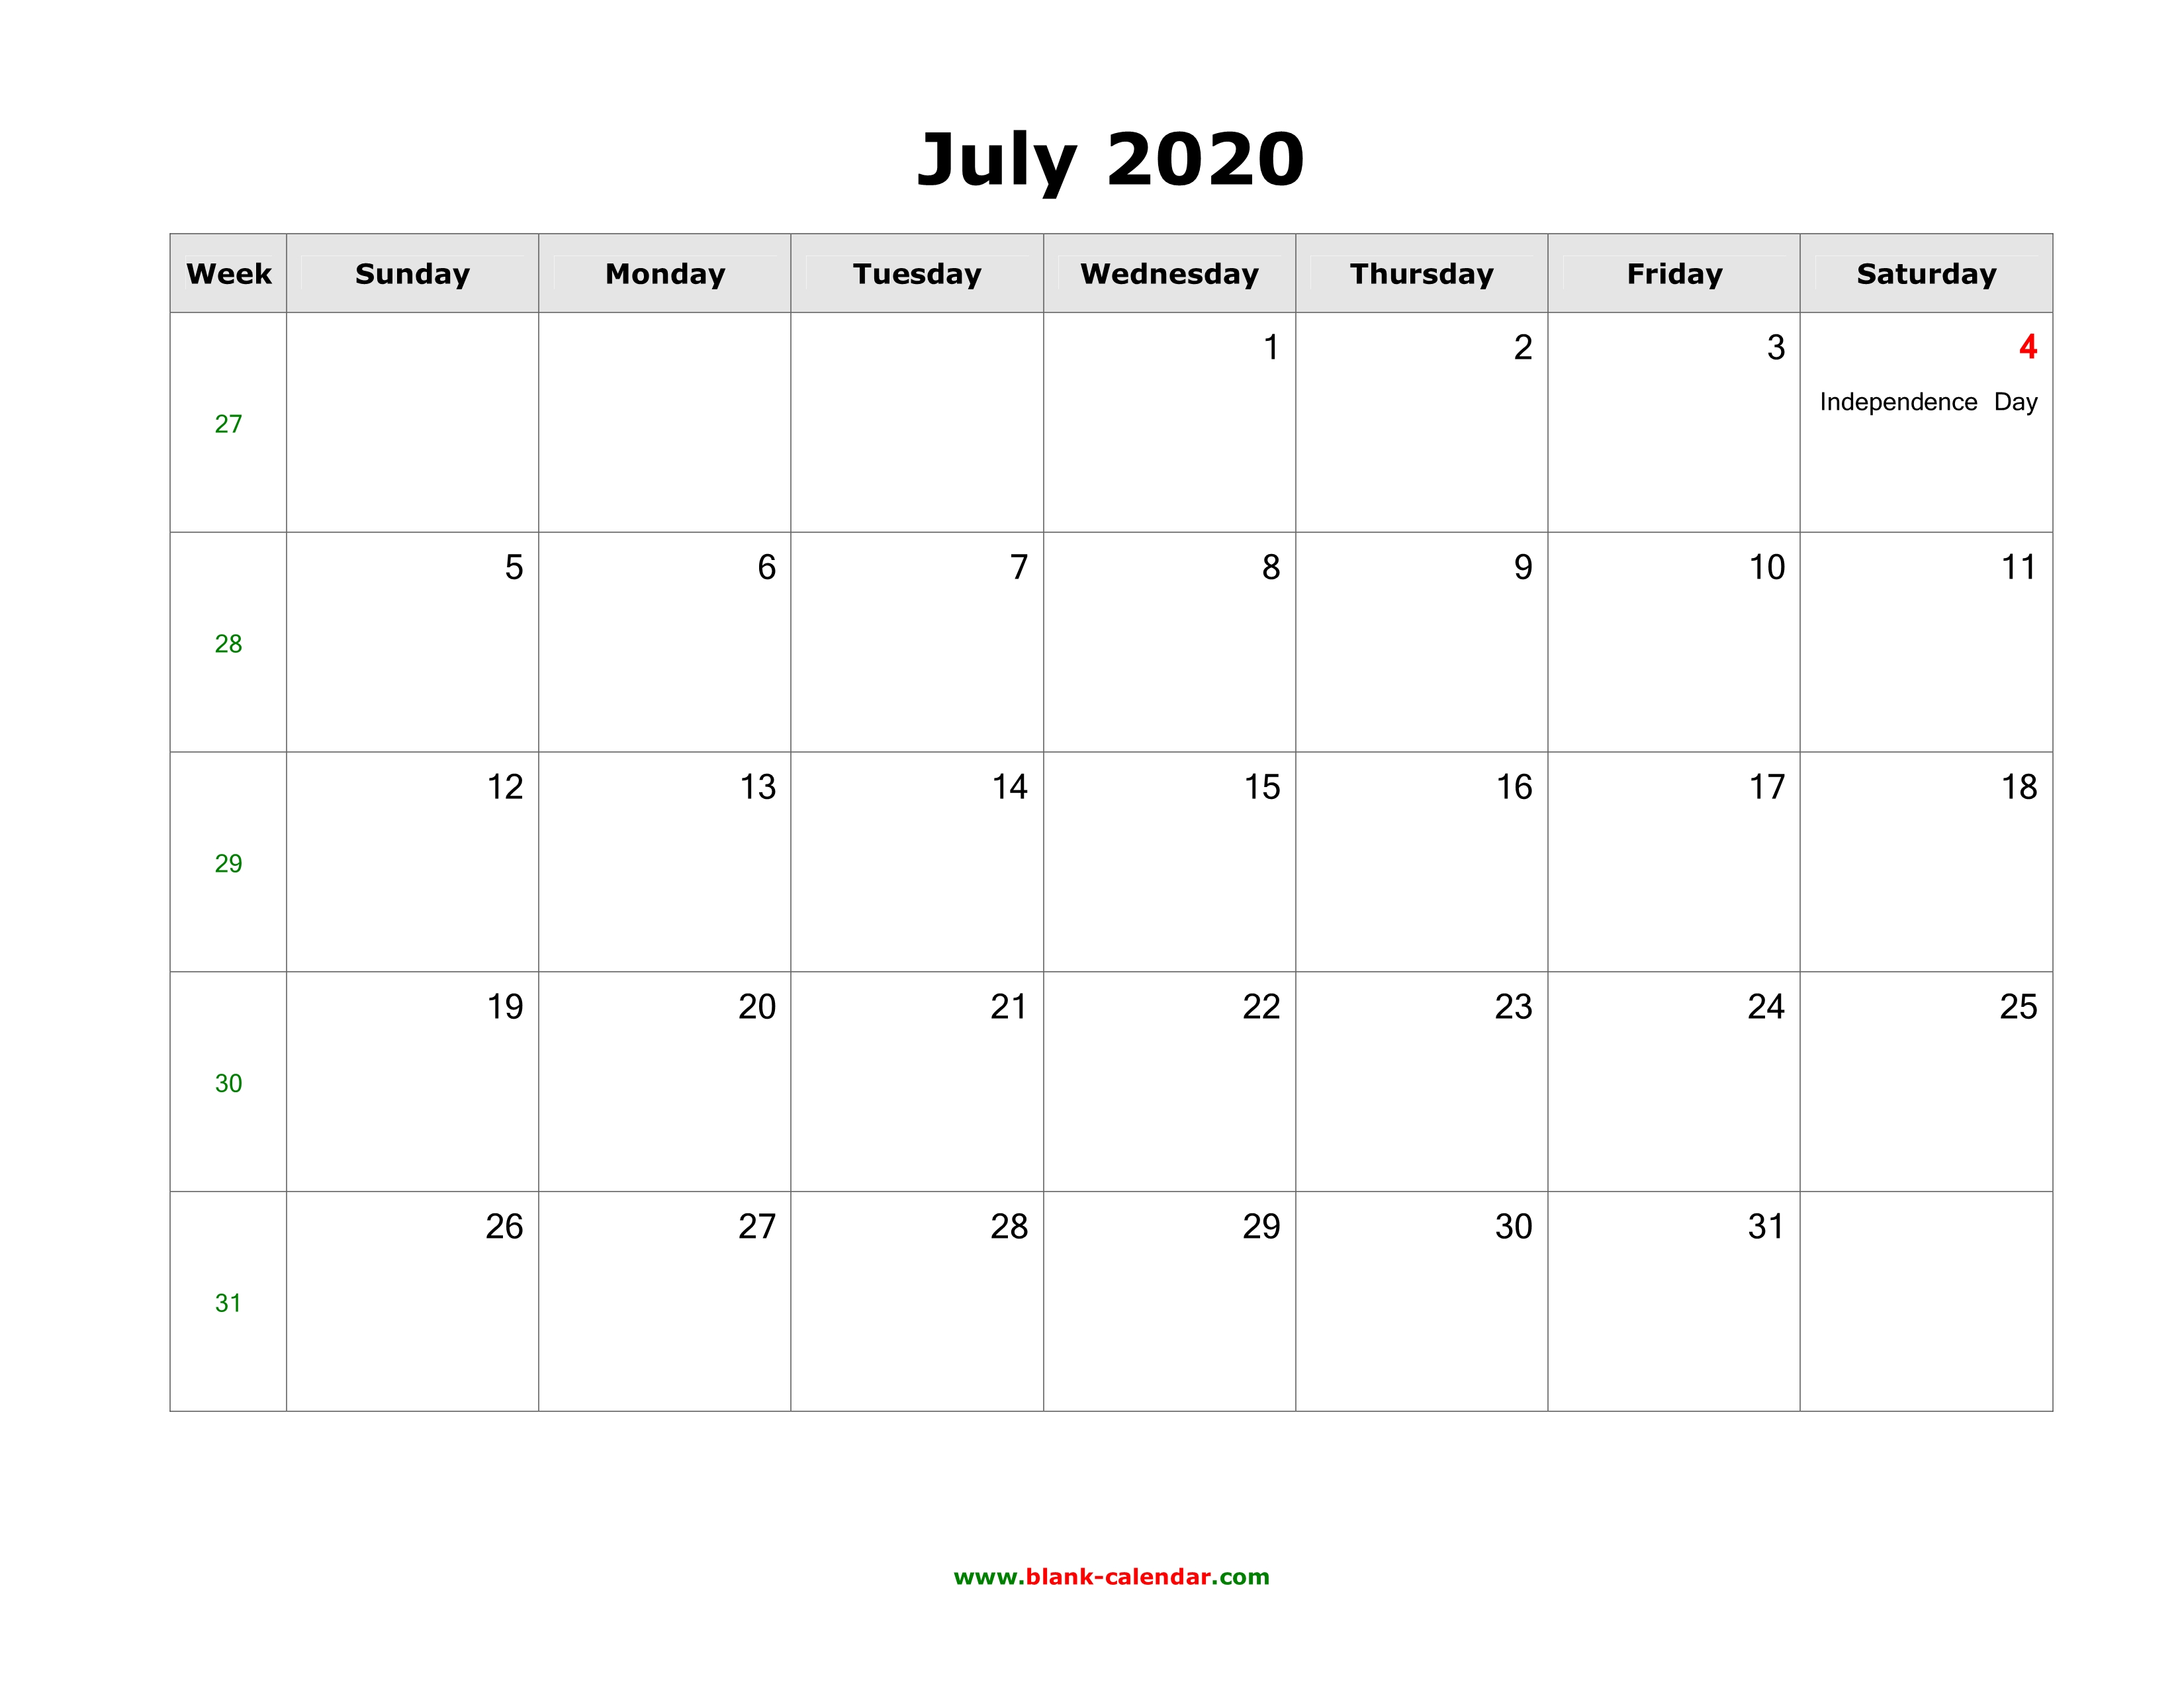 July Calendar For 2020.Download July 2020 Blank Calendar With Us Holidays Horizontal